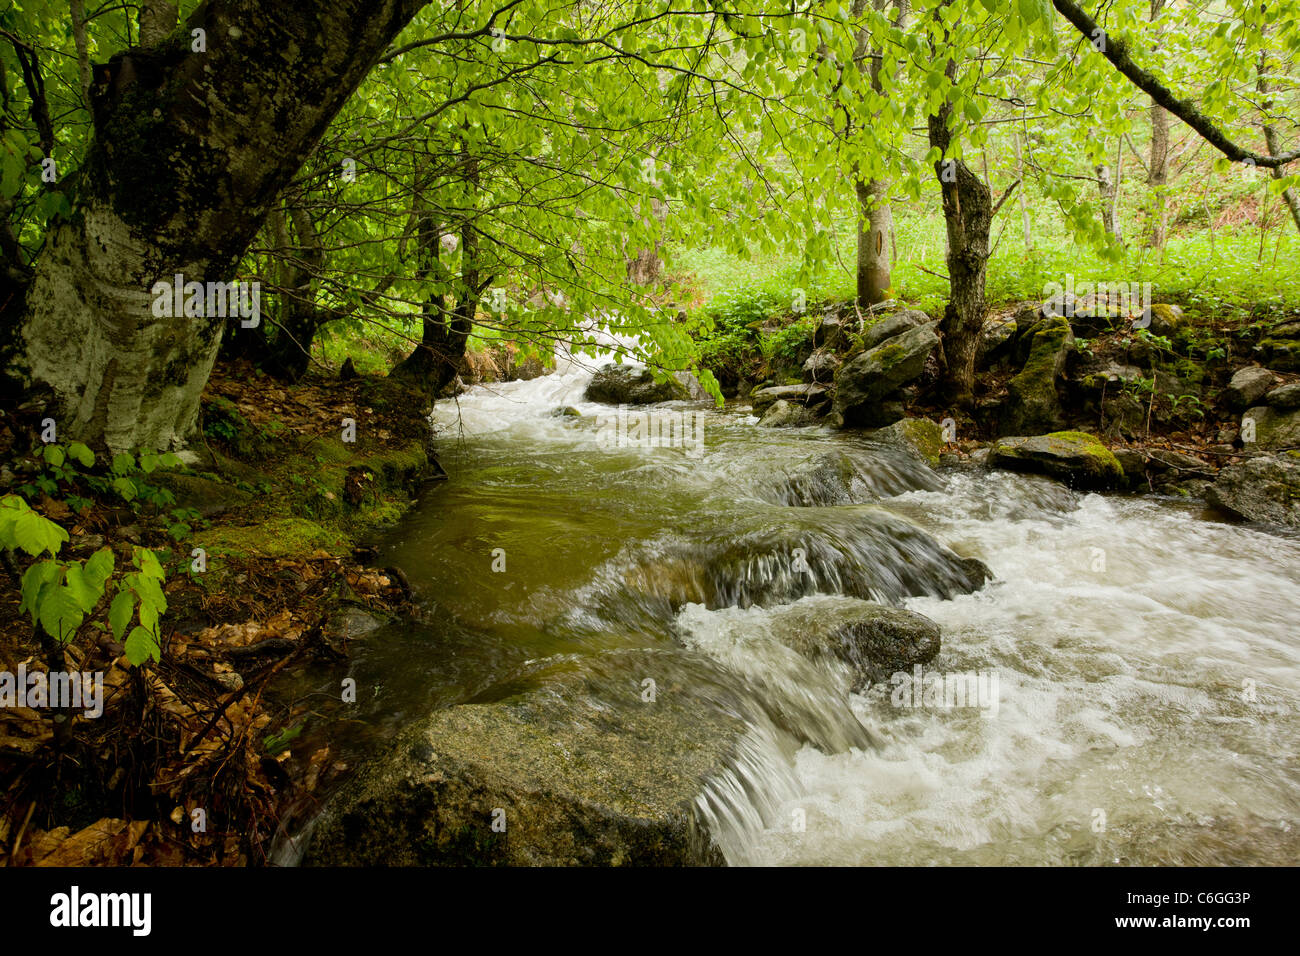 Stream in the Pirin National Park, Bulgaria - Stock Image